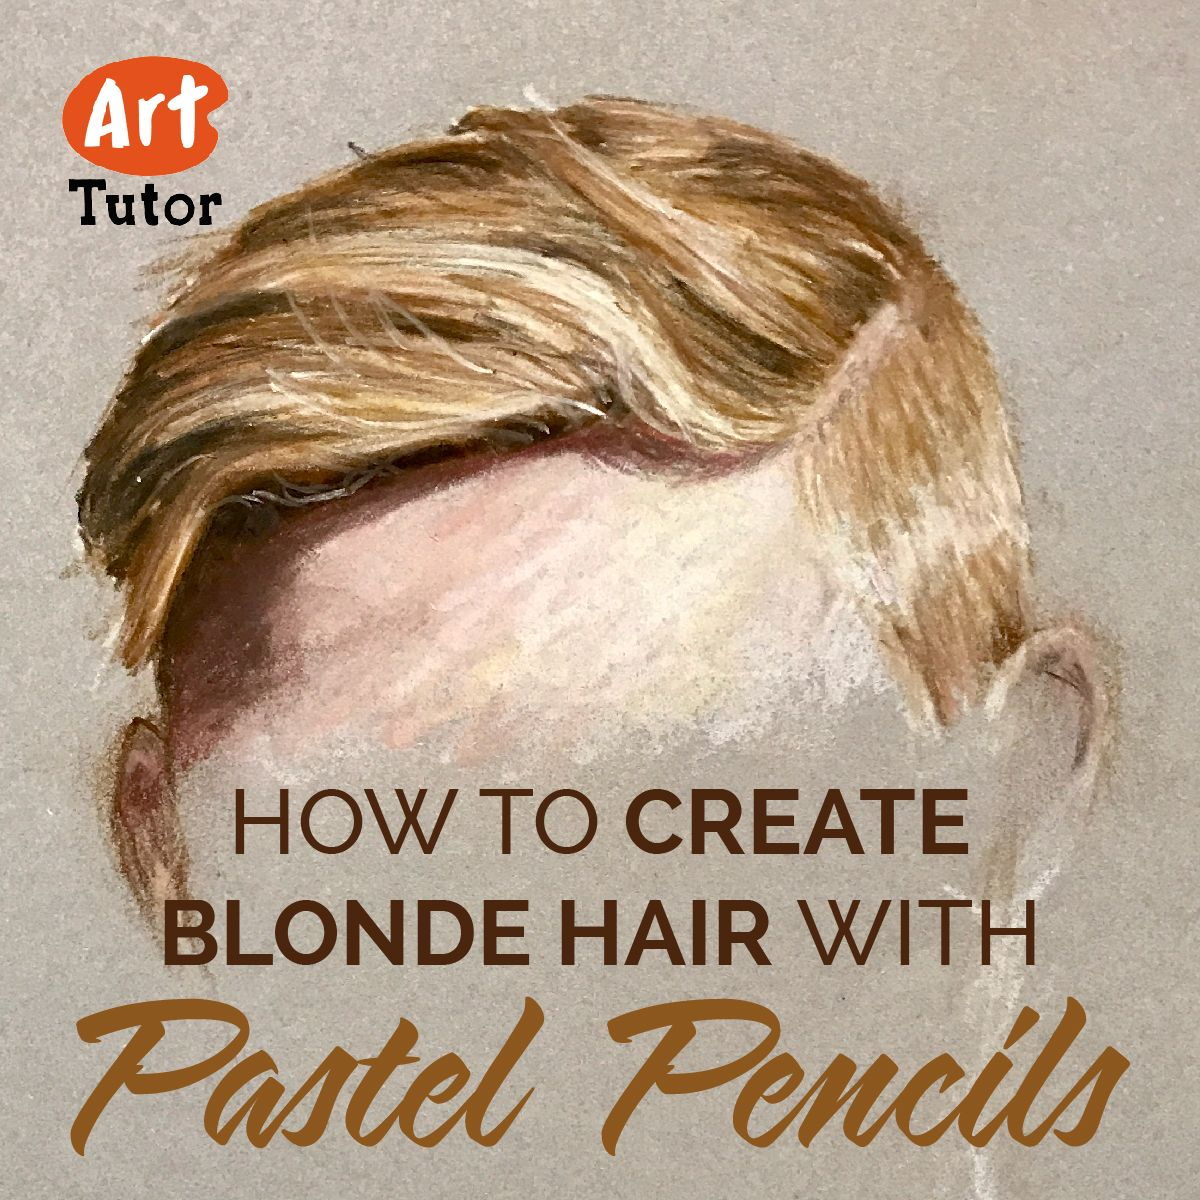 Learn How To Draw Blonde Hair In Pastel Pencil As Part Of The